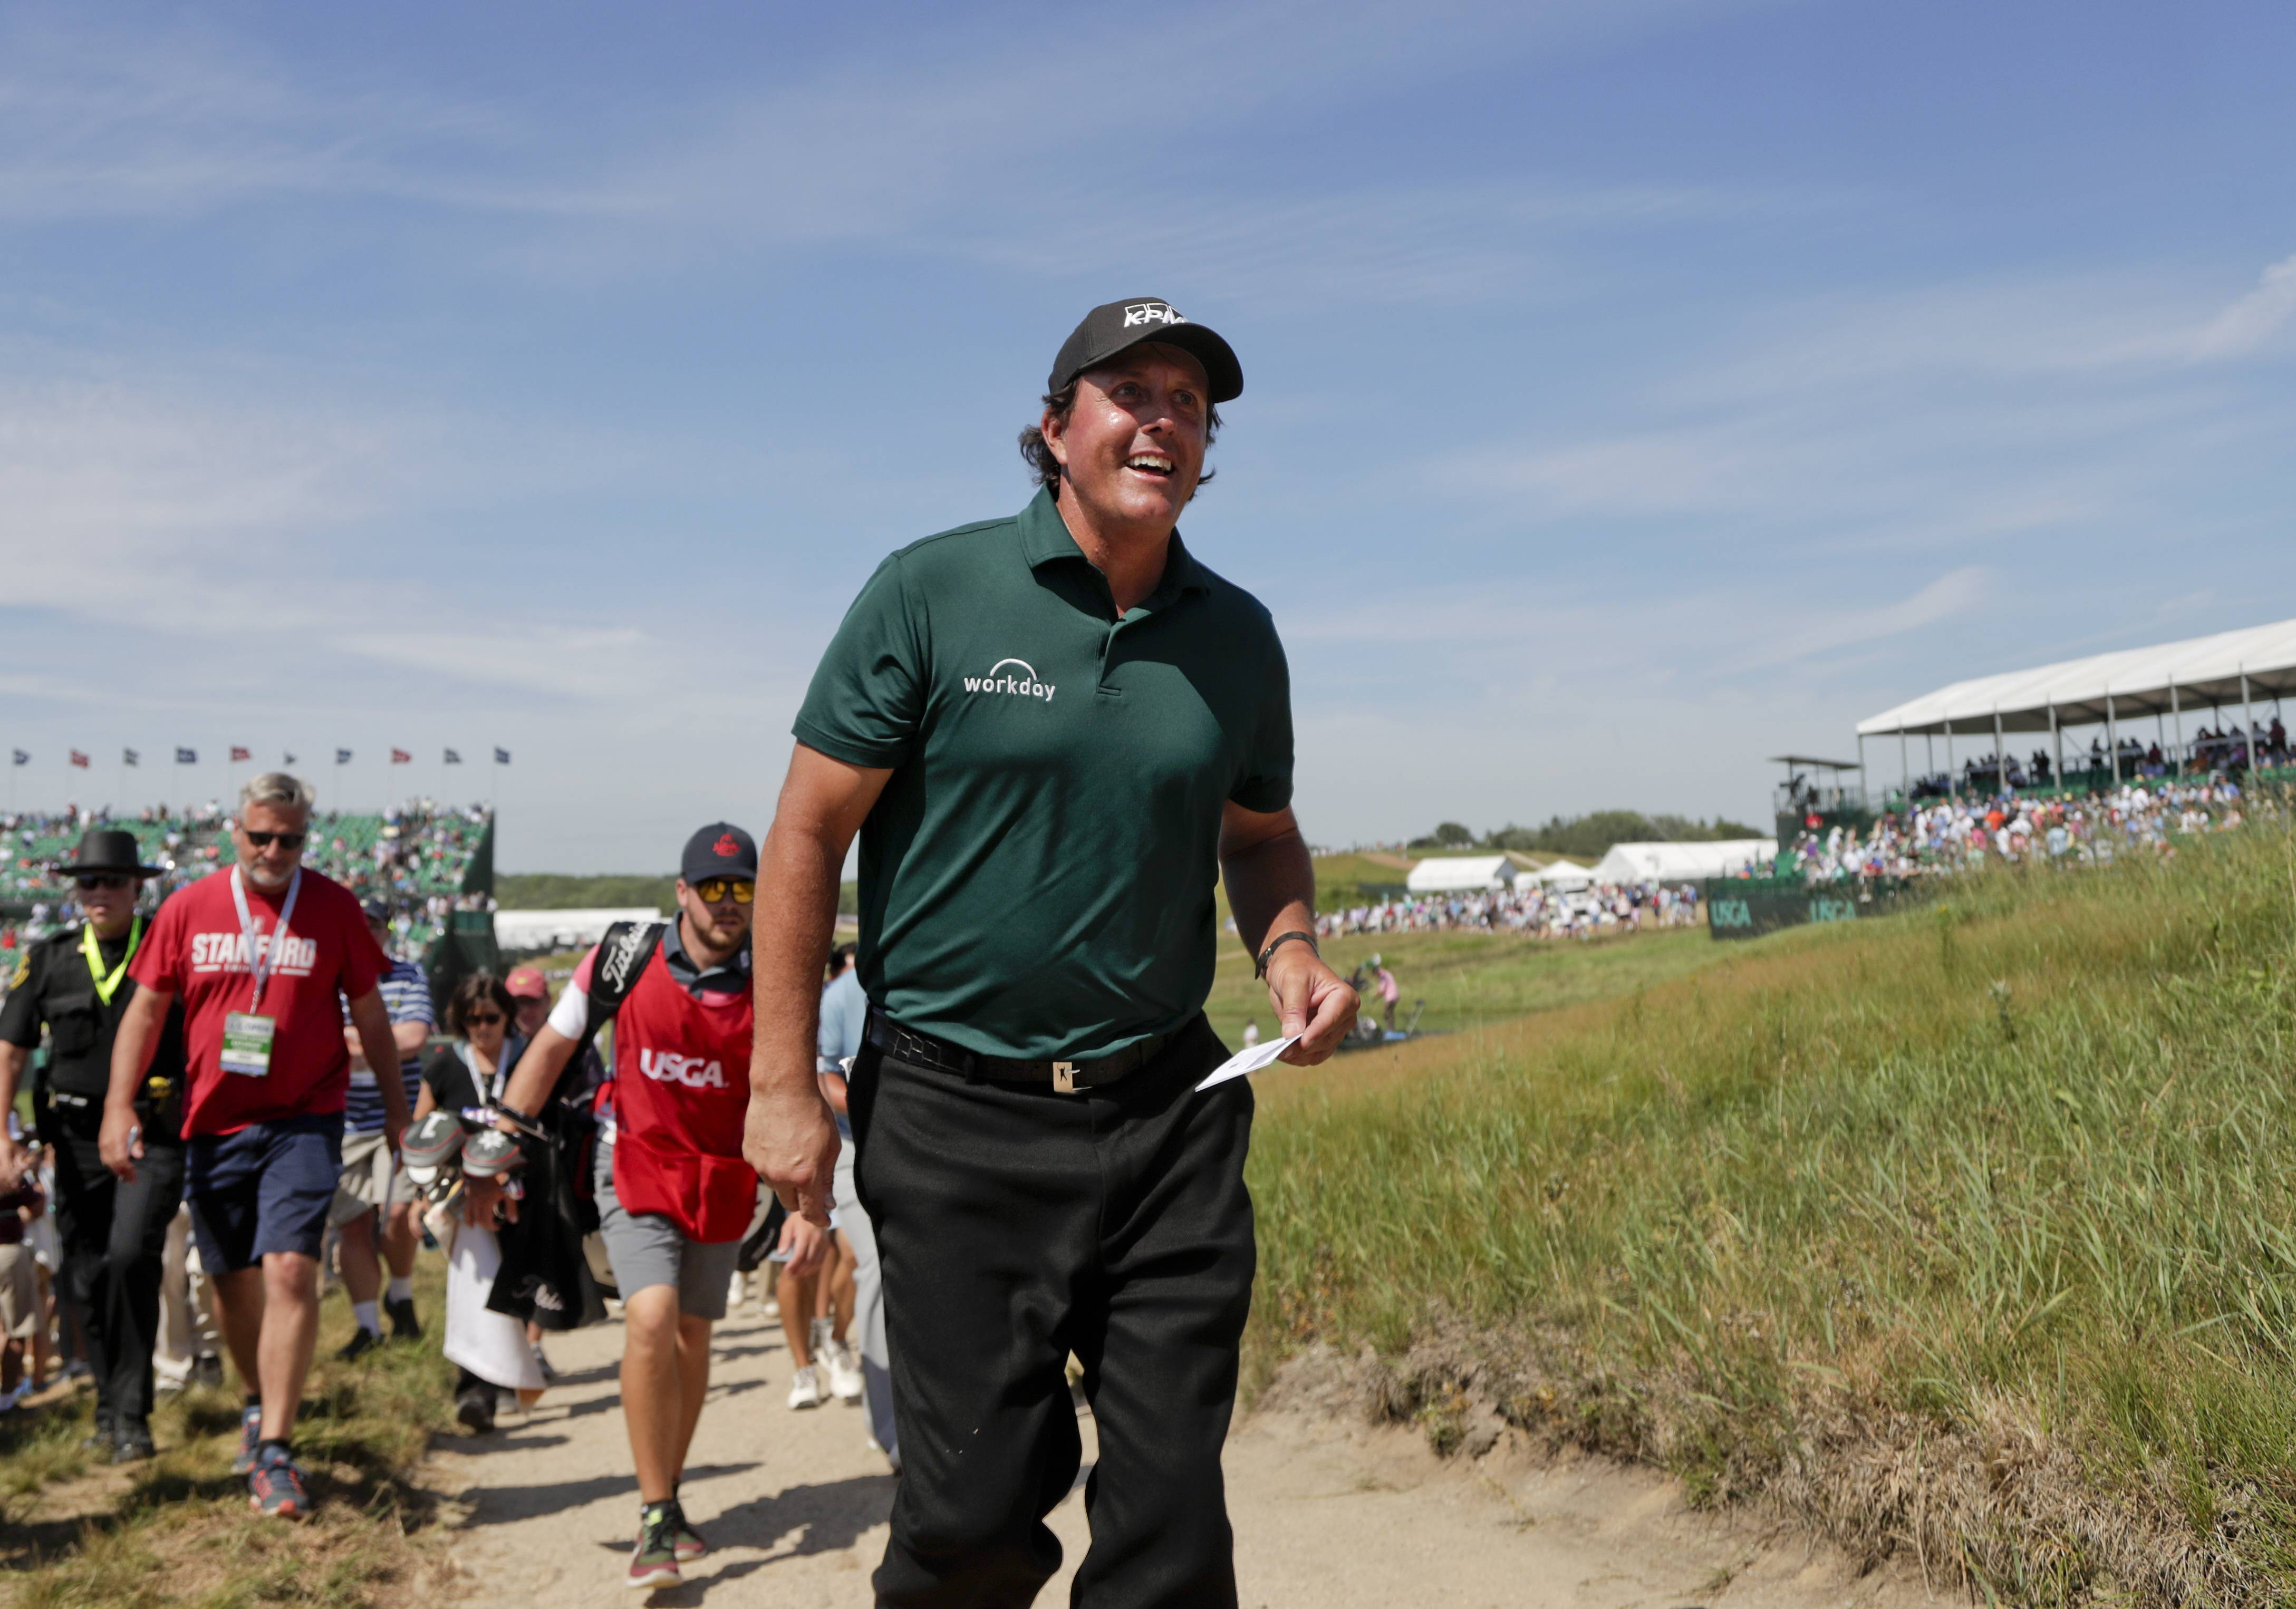 Phil Mickelson walks off the course Saturday after finishing the 18th hole during the third round of the U.S. Open Golf Championship in Southampton, N.Y.